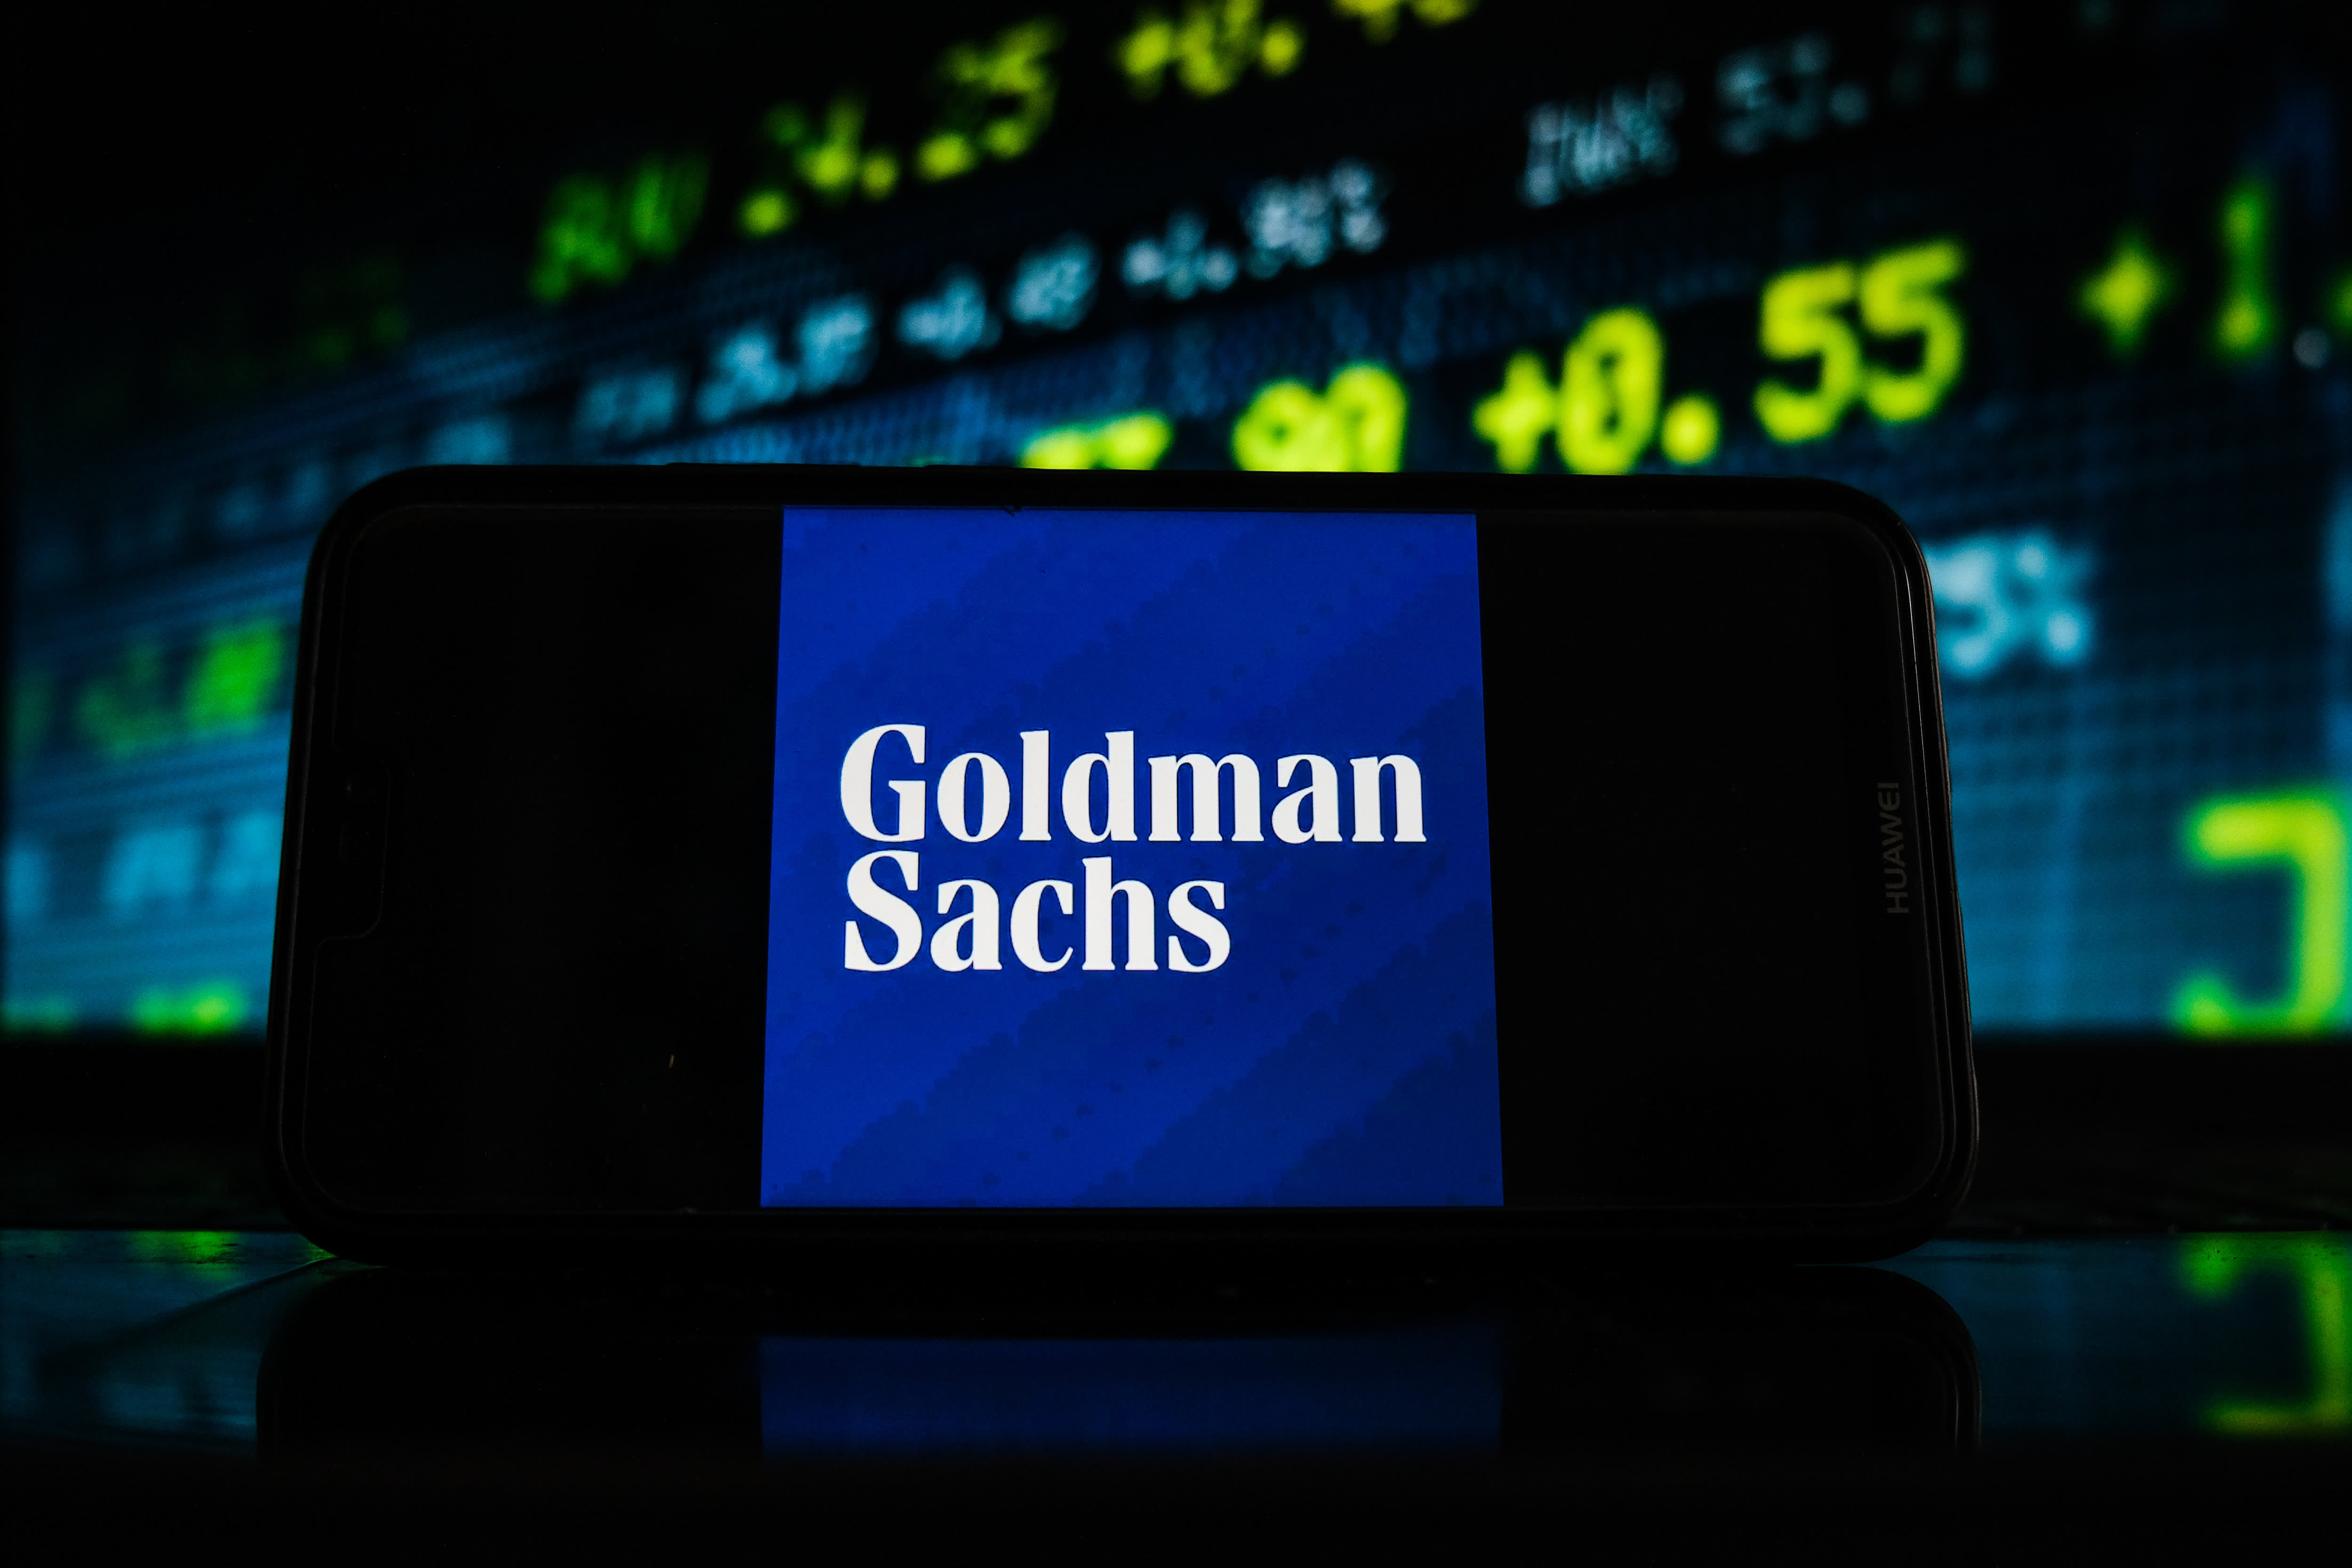 Goldman Sachs is close to offering bitcoin and other digital assets to its wealth management clients